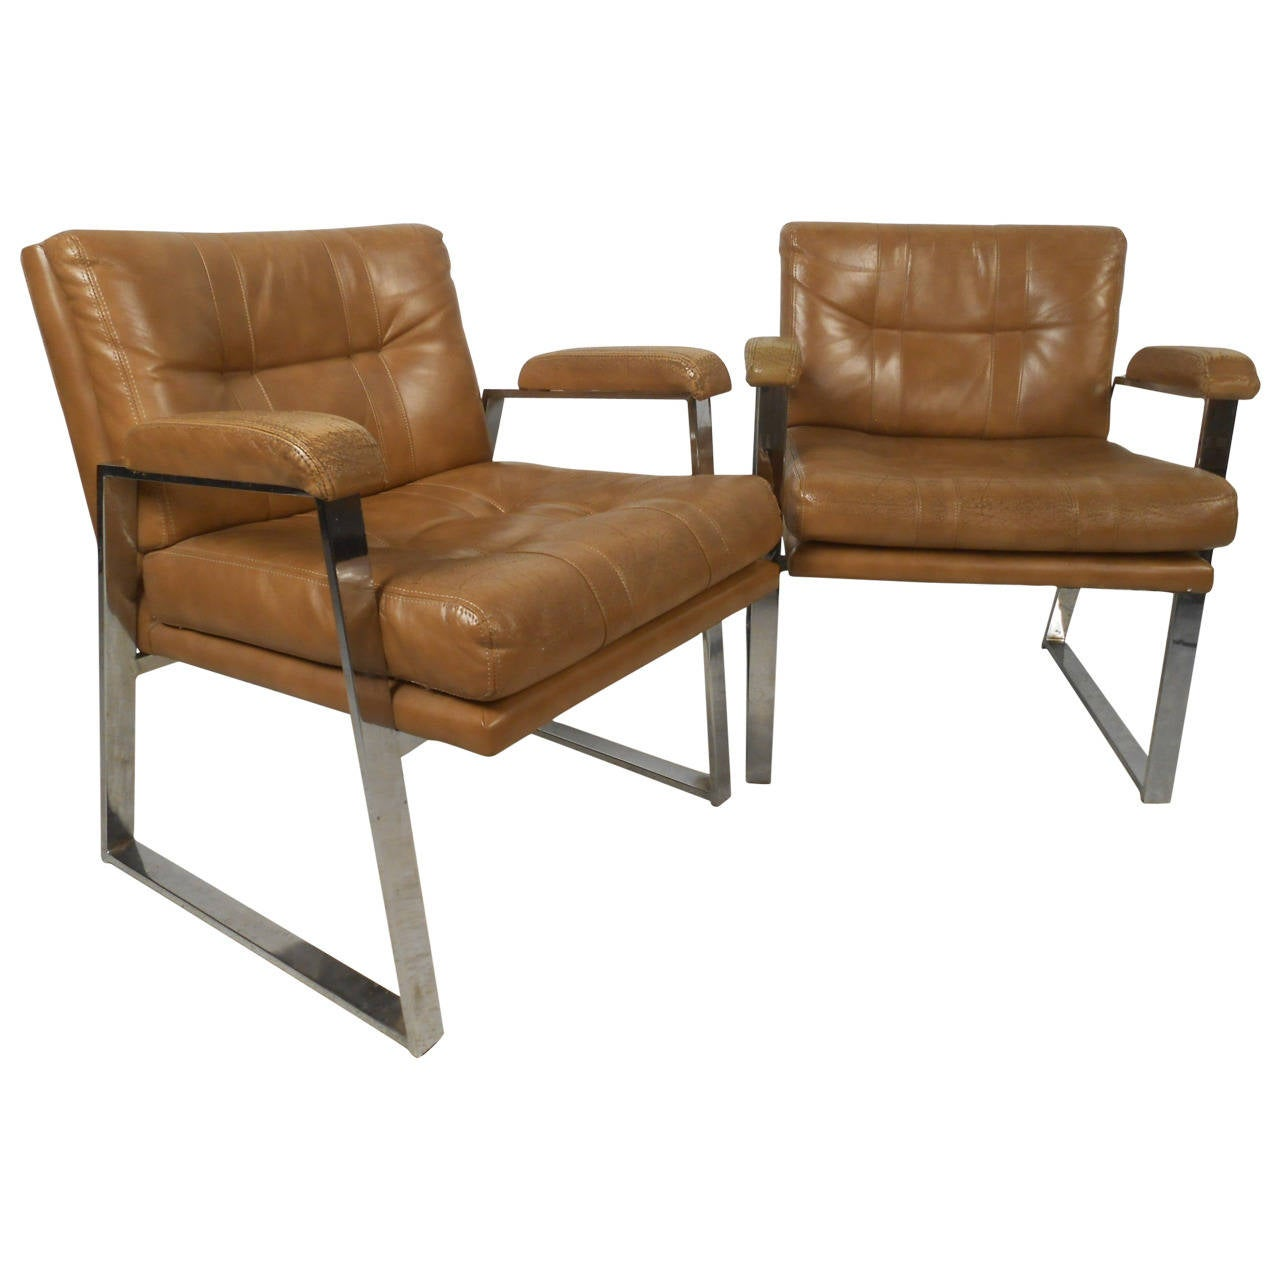 Pair of Midcentury Chrome Side Chairs after Milo Baughman